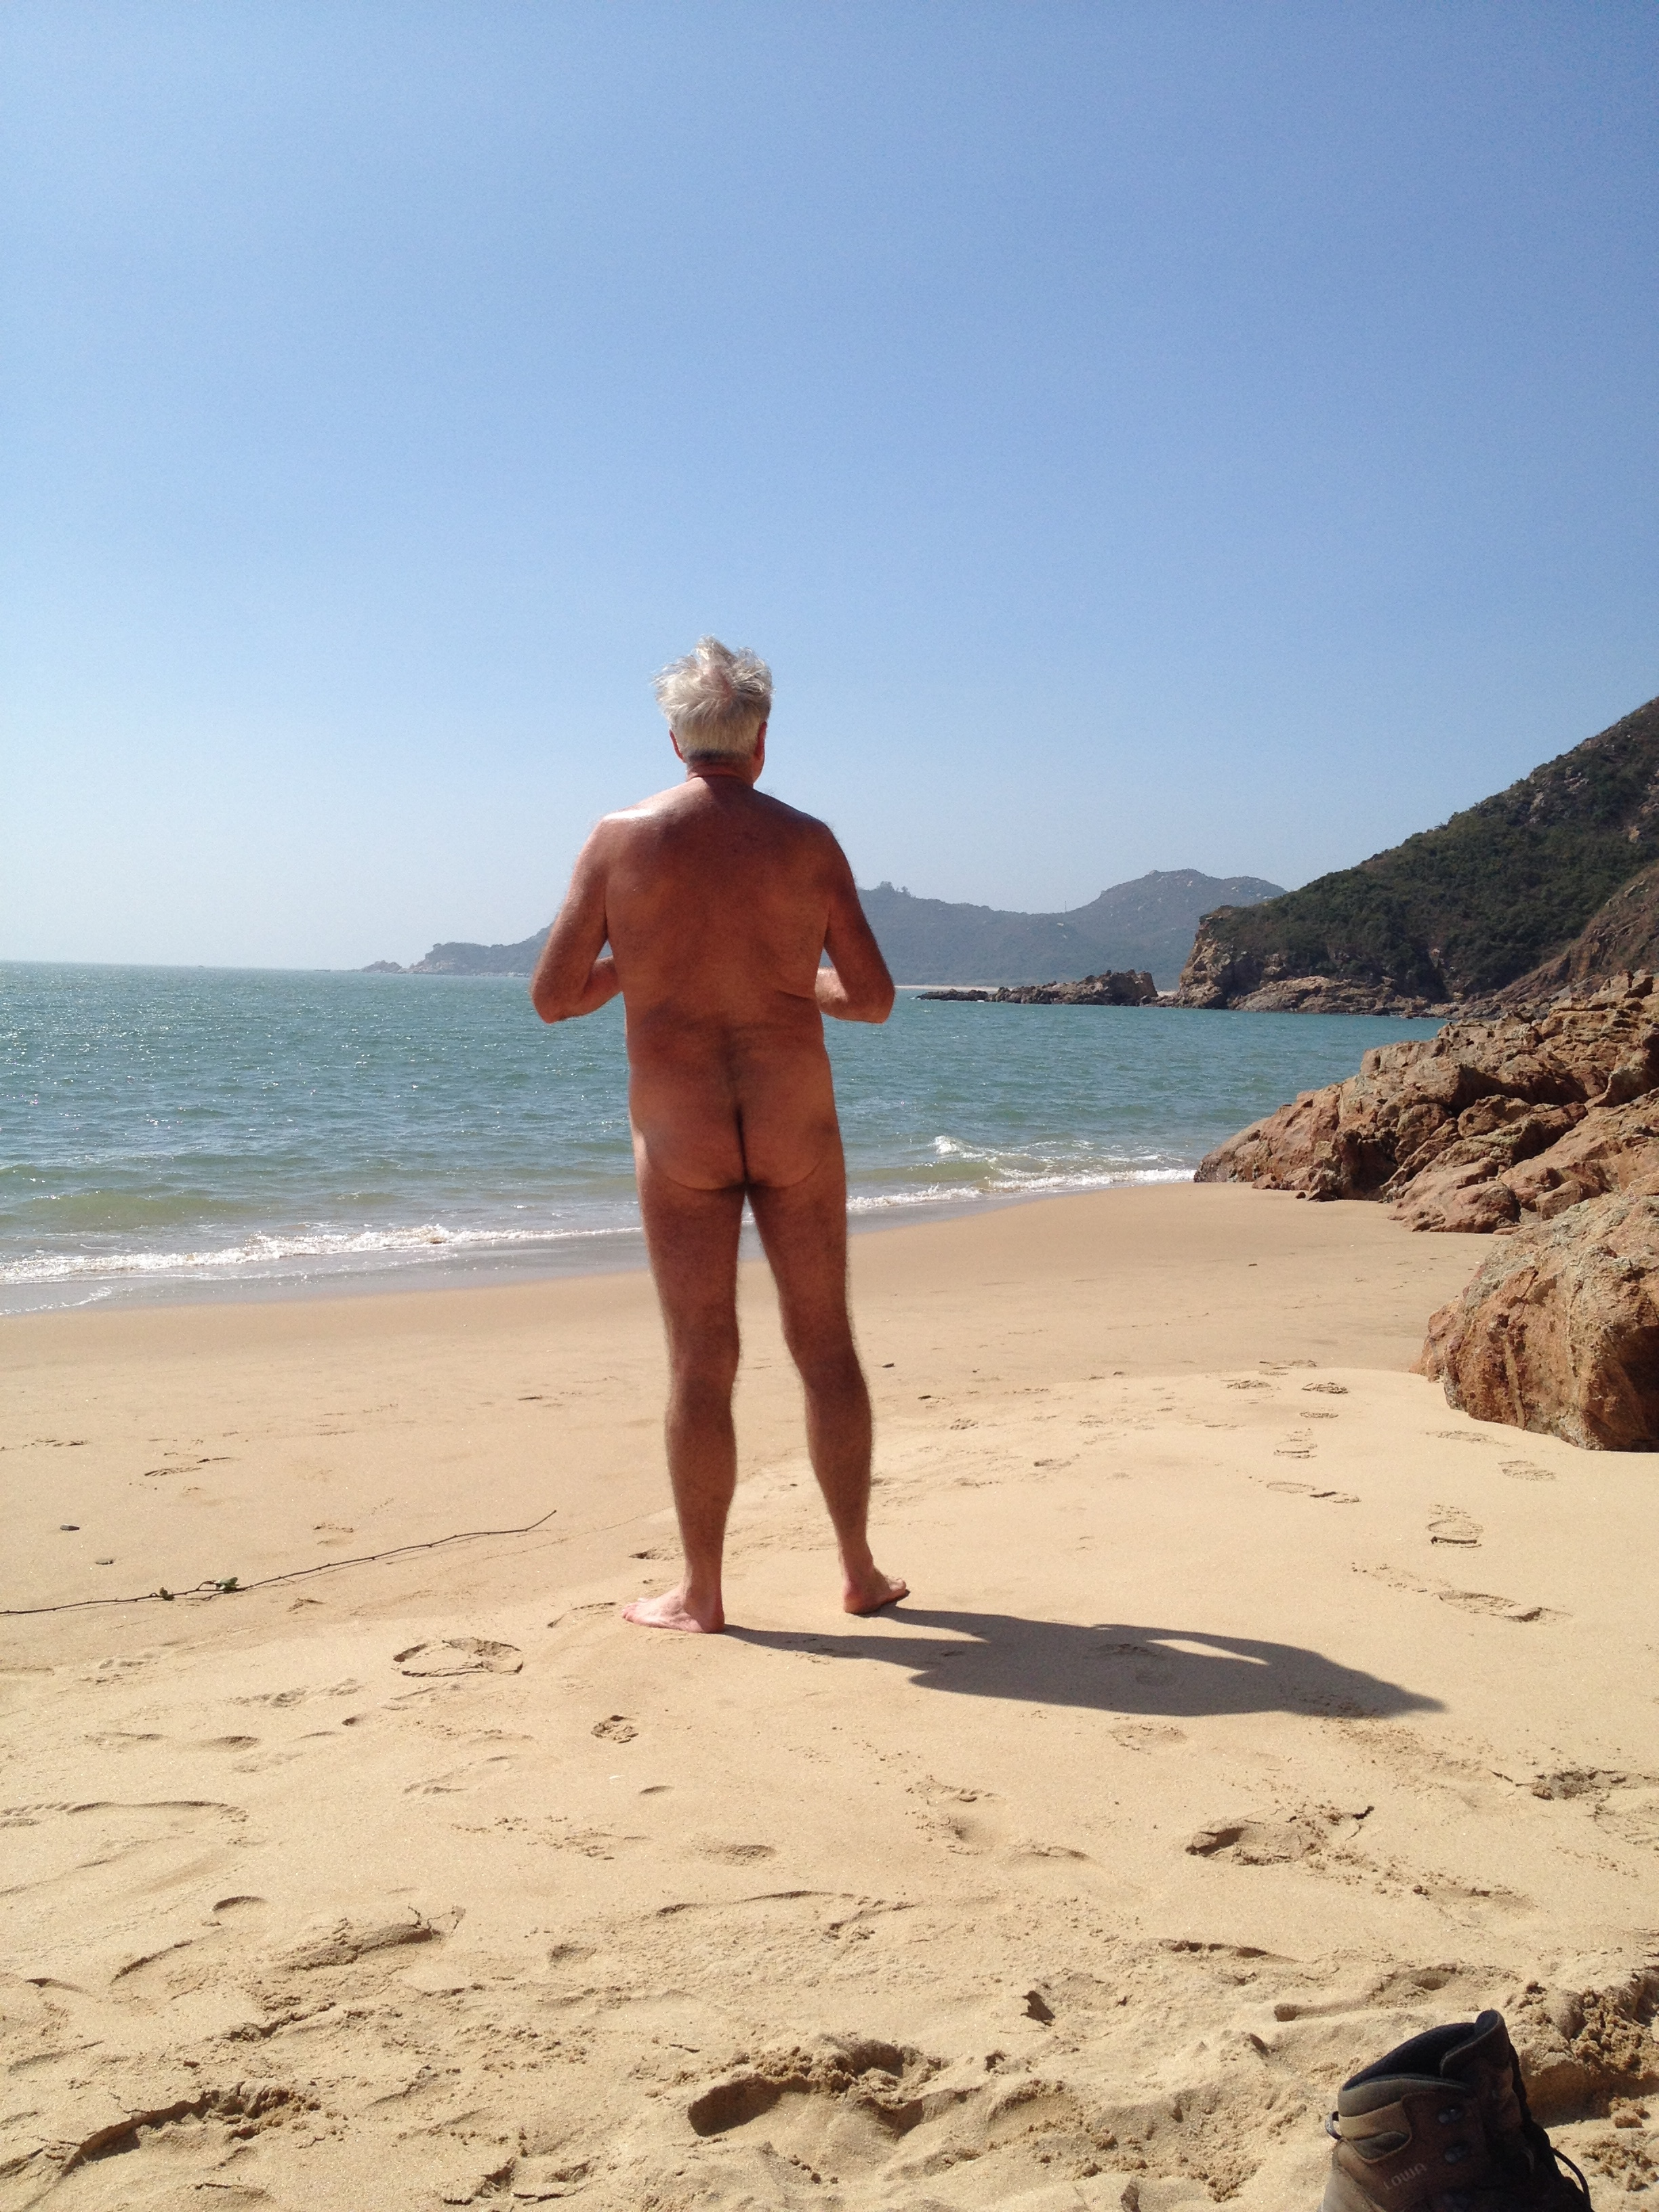 Nudist photo file sharing